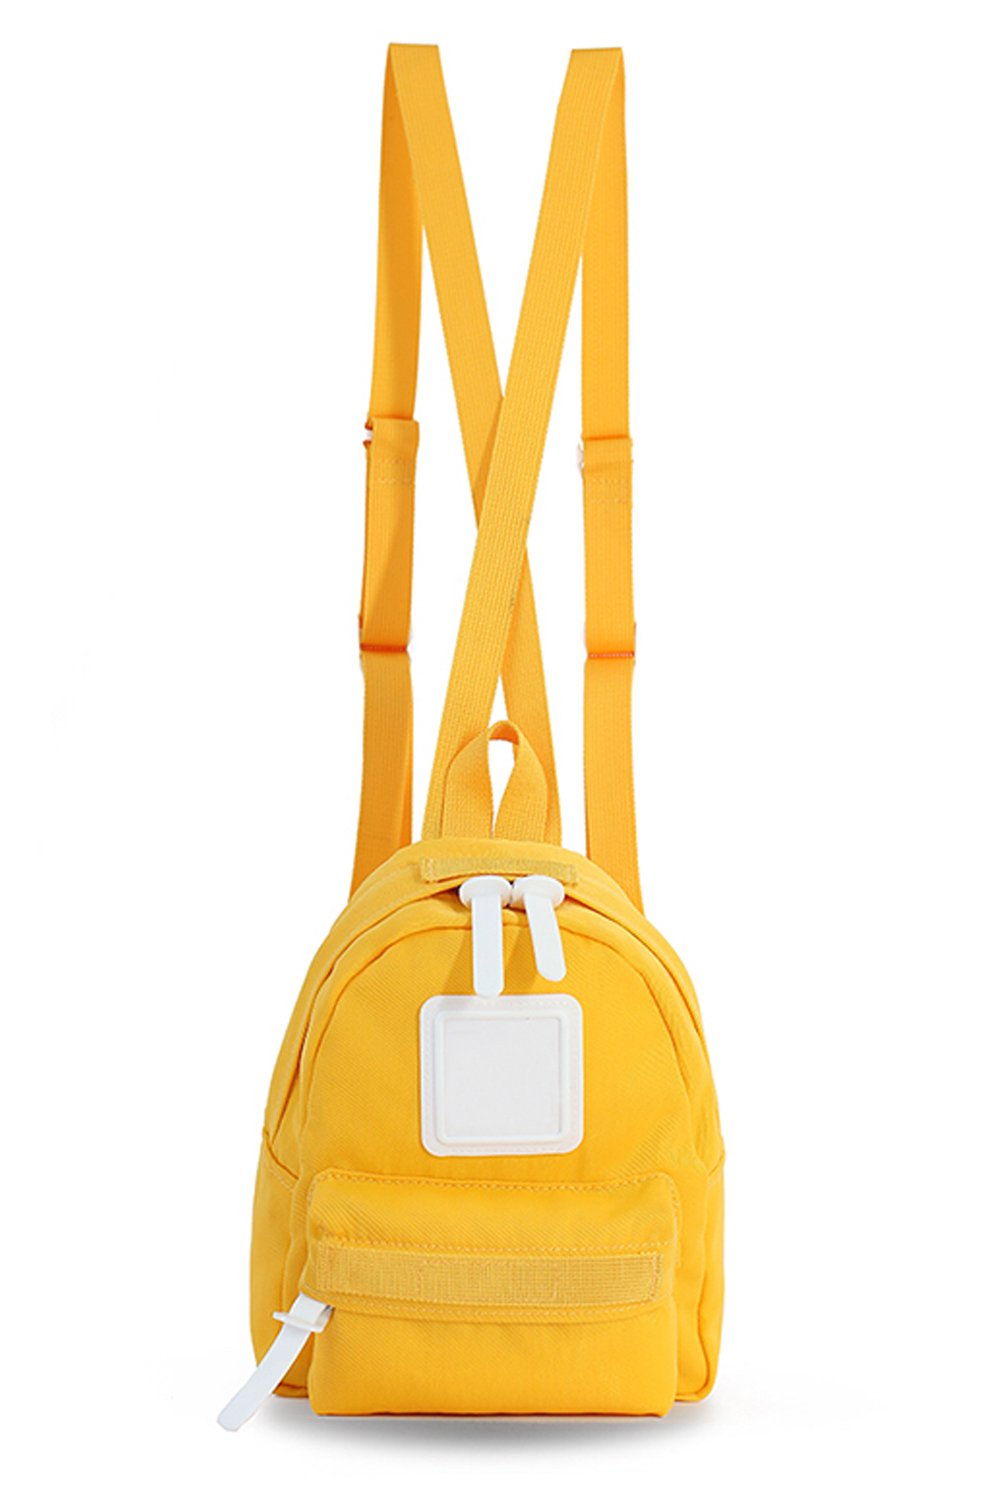 Mini Backpack For Women, Men, Toddlers, Boys and Girls; Popular as a Purse, Diaper Bag, Miniature IPad or Daypack - Yellow